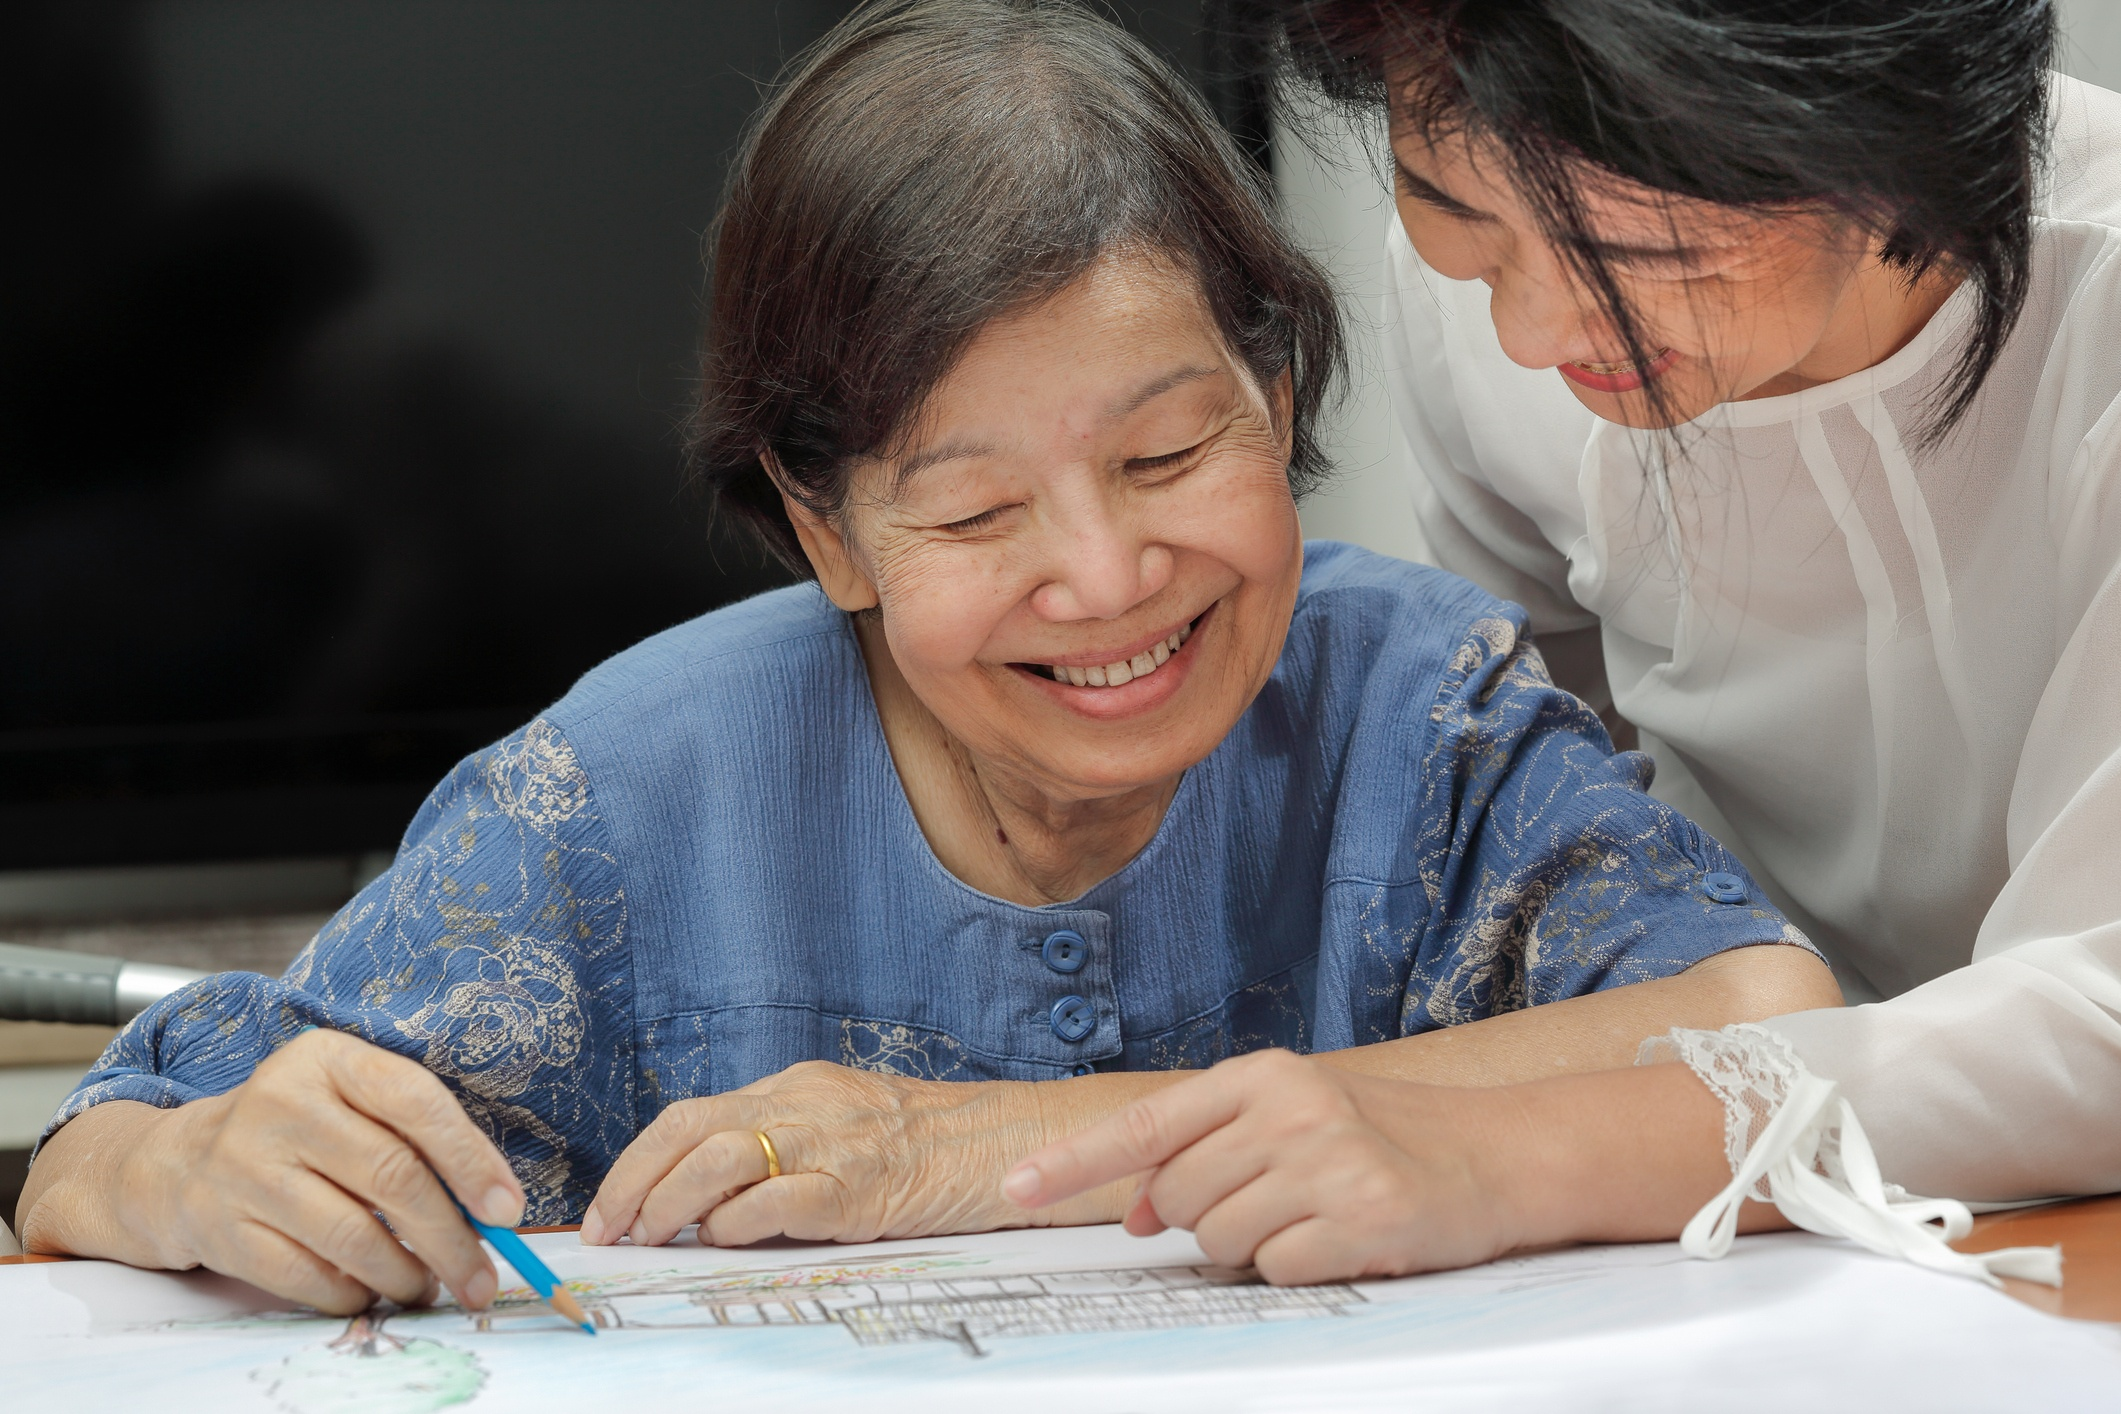 Memory Care Activities: Stimulating Activities for Alzheimer's Patients